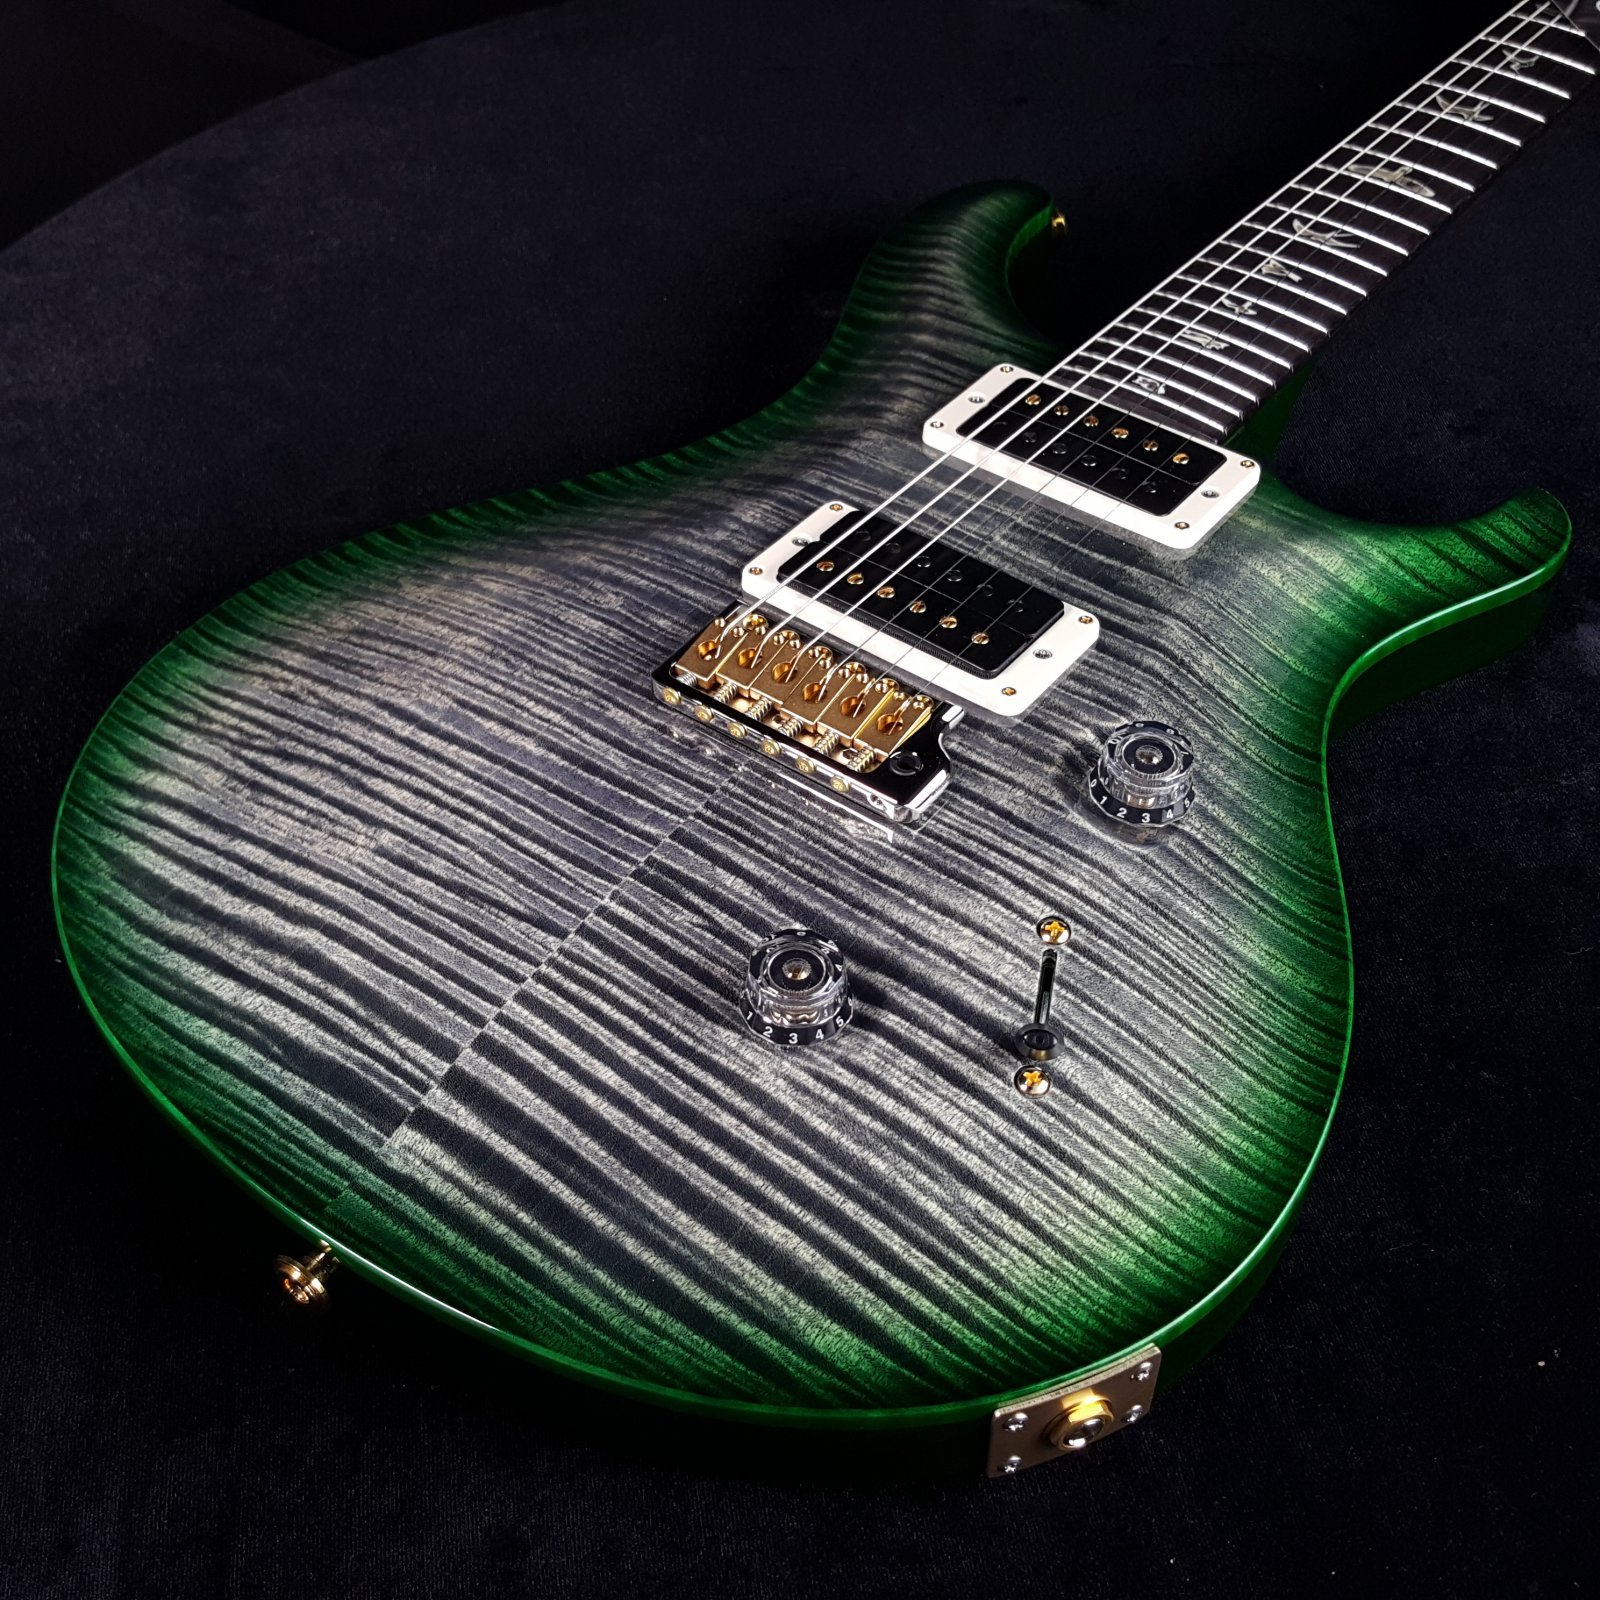 Paul Reed Smith PRS Custom 24 10 Top Custom Color, Charcoal Emerald